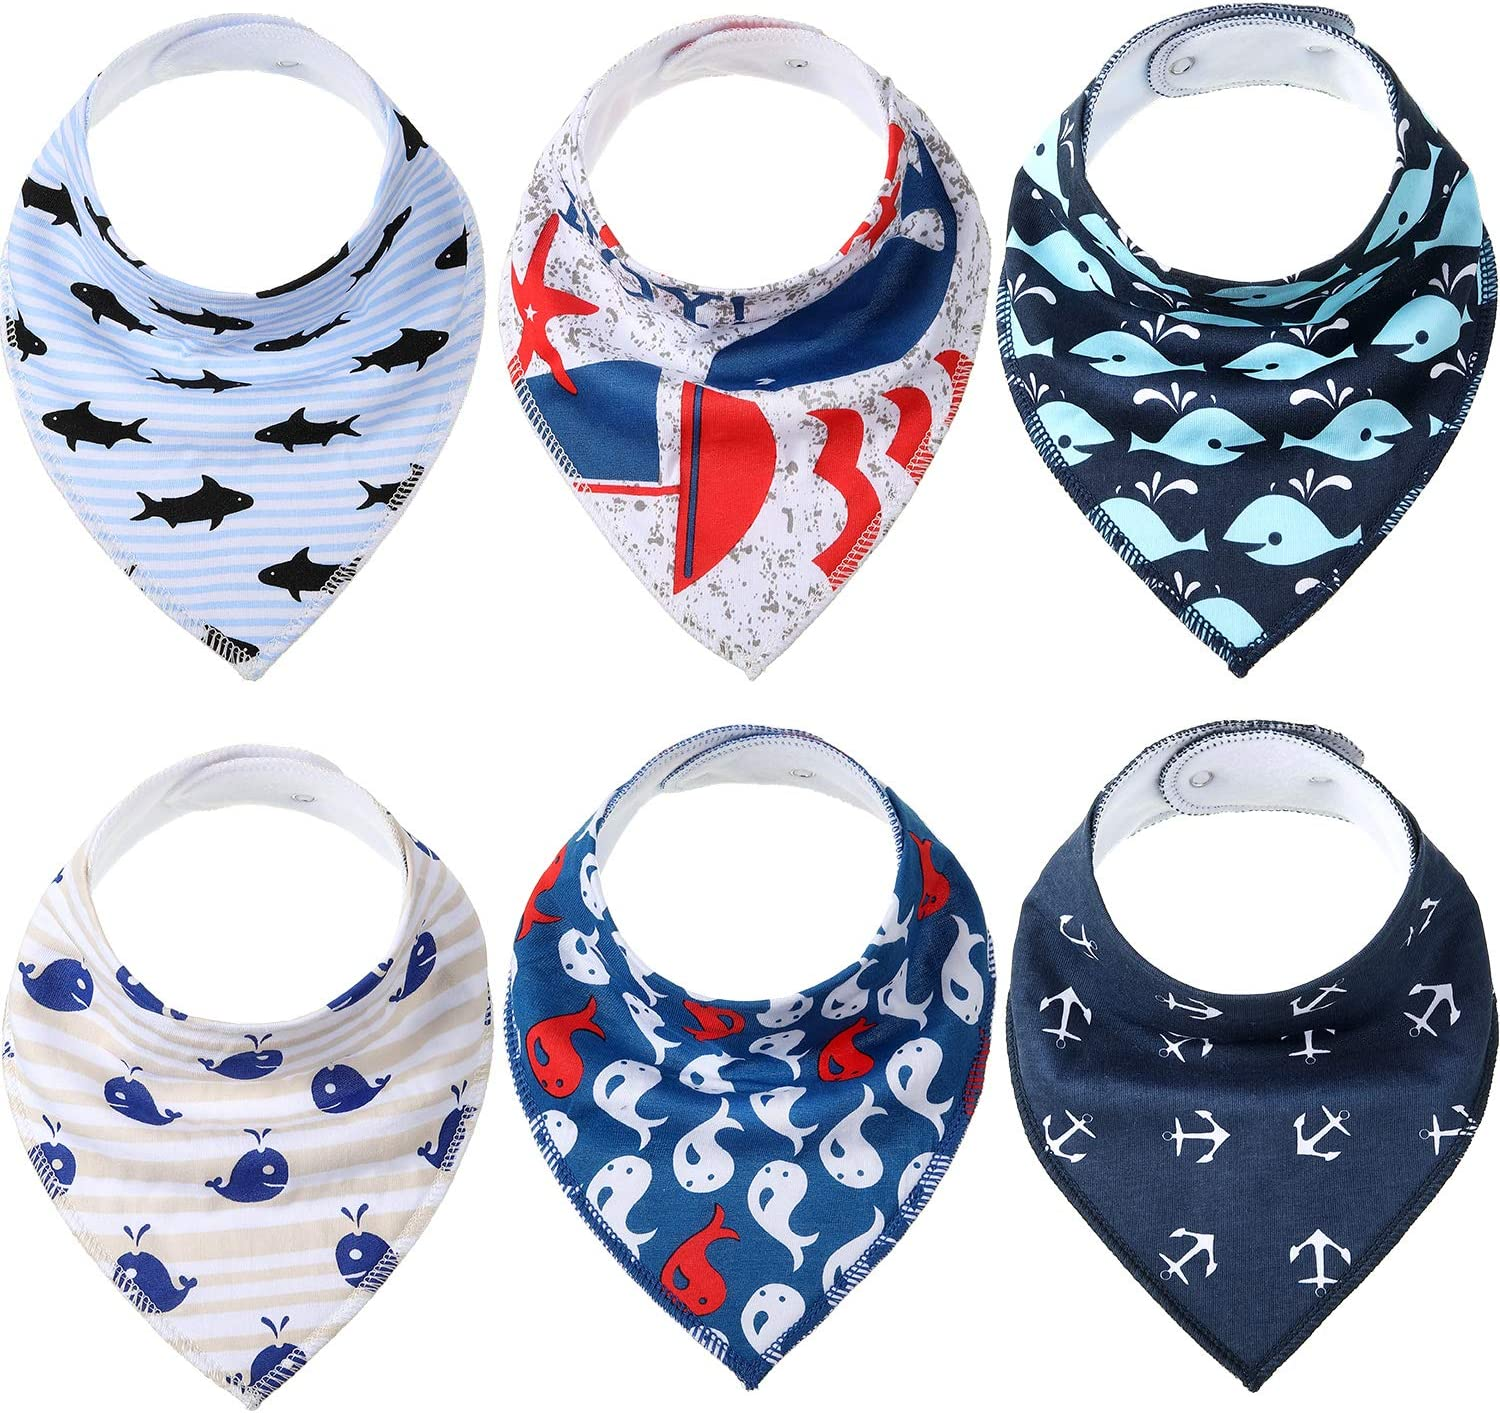 SATINIOR 6 Pieces Funny Pet Bandanas Navigation Style Dog Triangle Scarf Bibs Cat Puppy Bandana for Small Pets Accessories